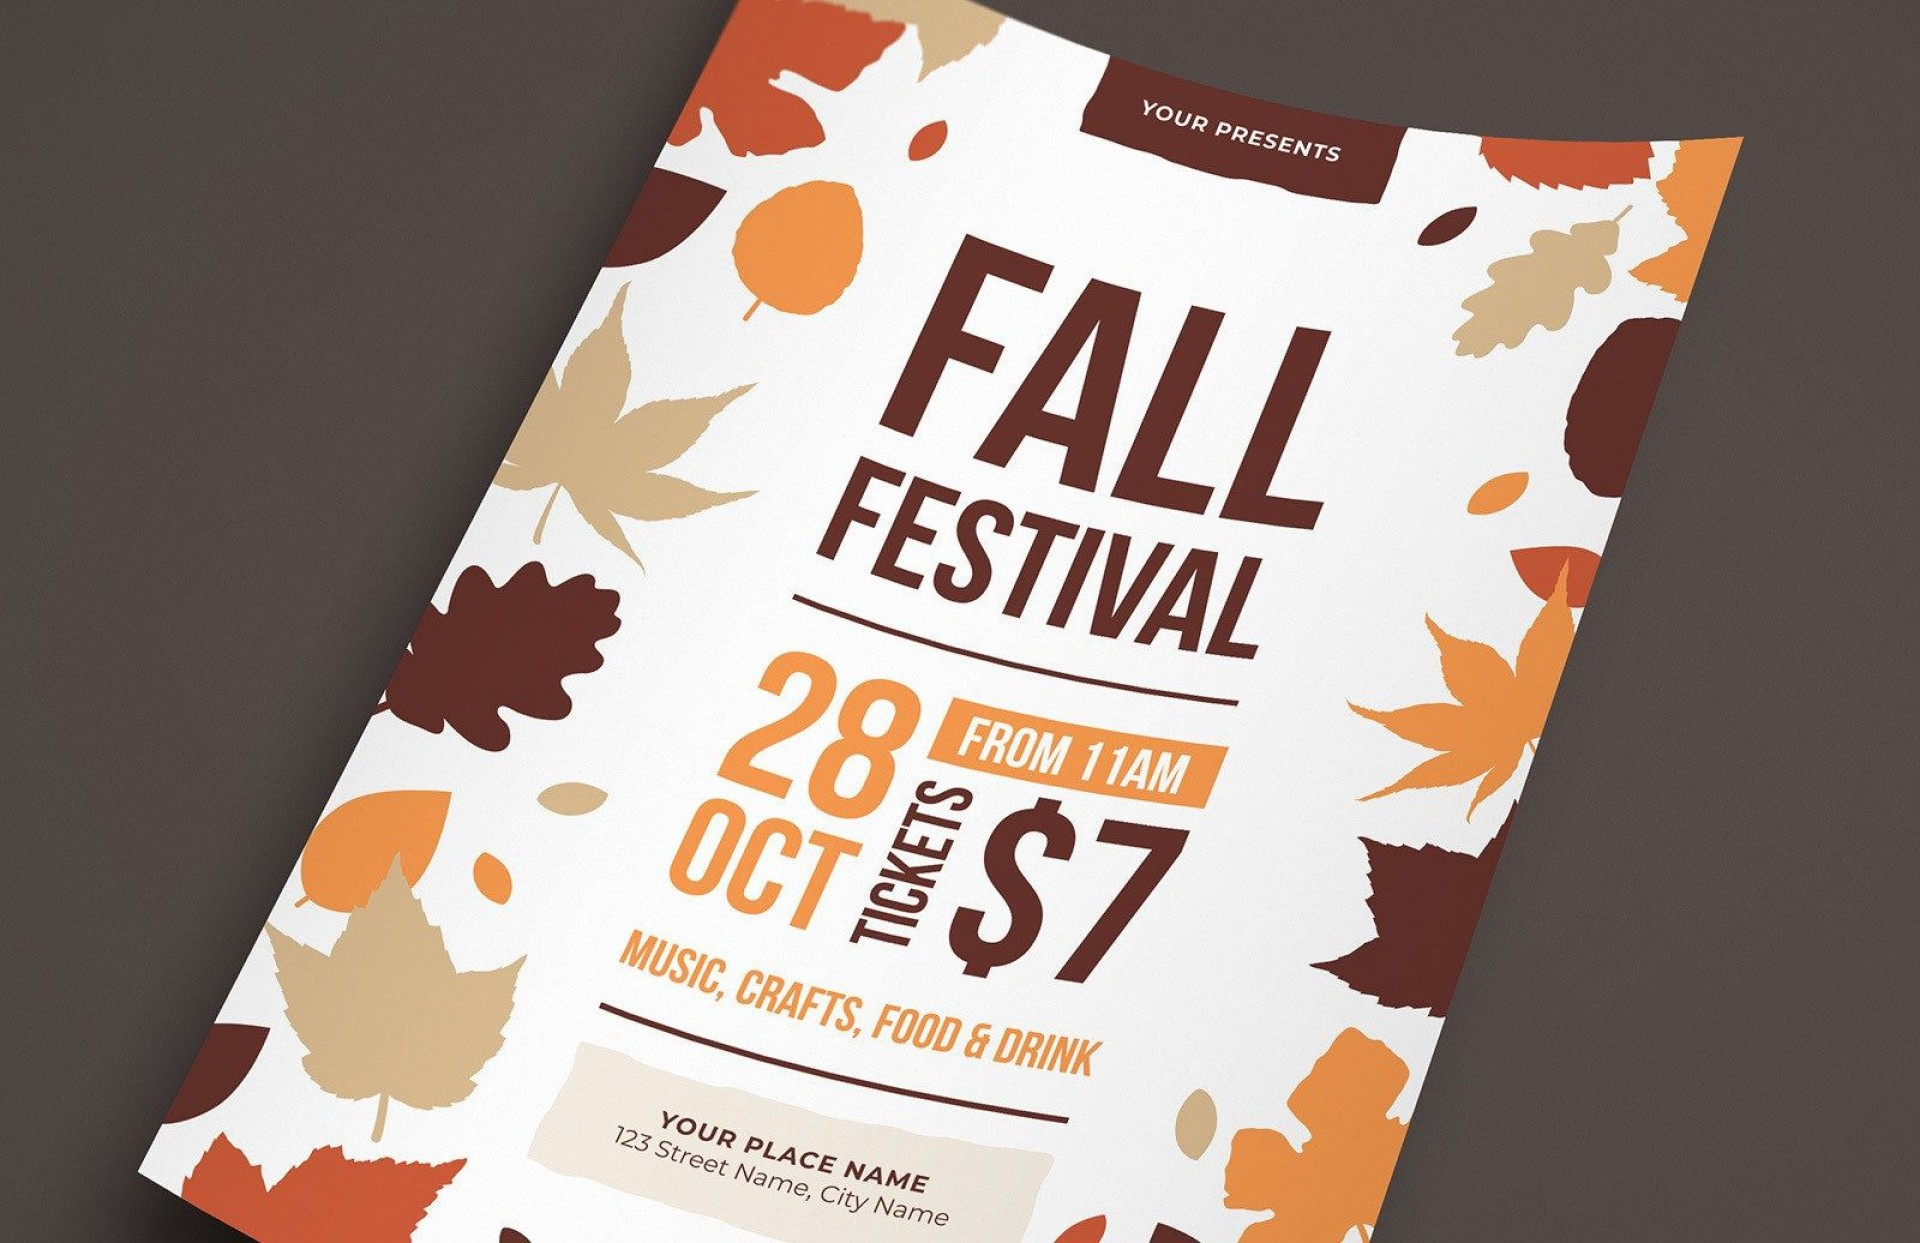 007 Dreaded Fall Festival Flyer Template Inspiration  Free1920